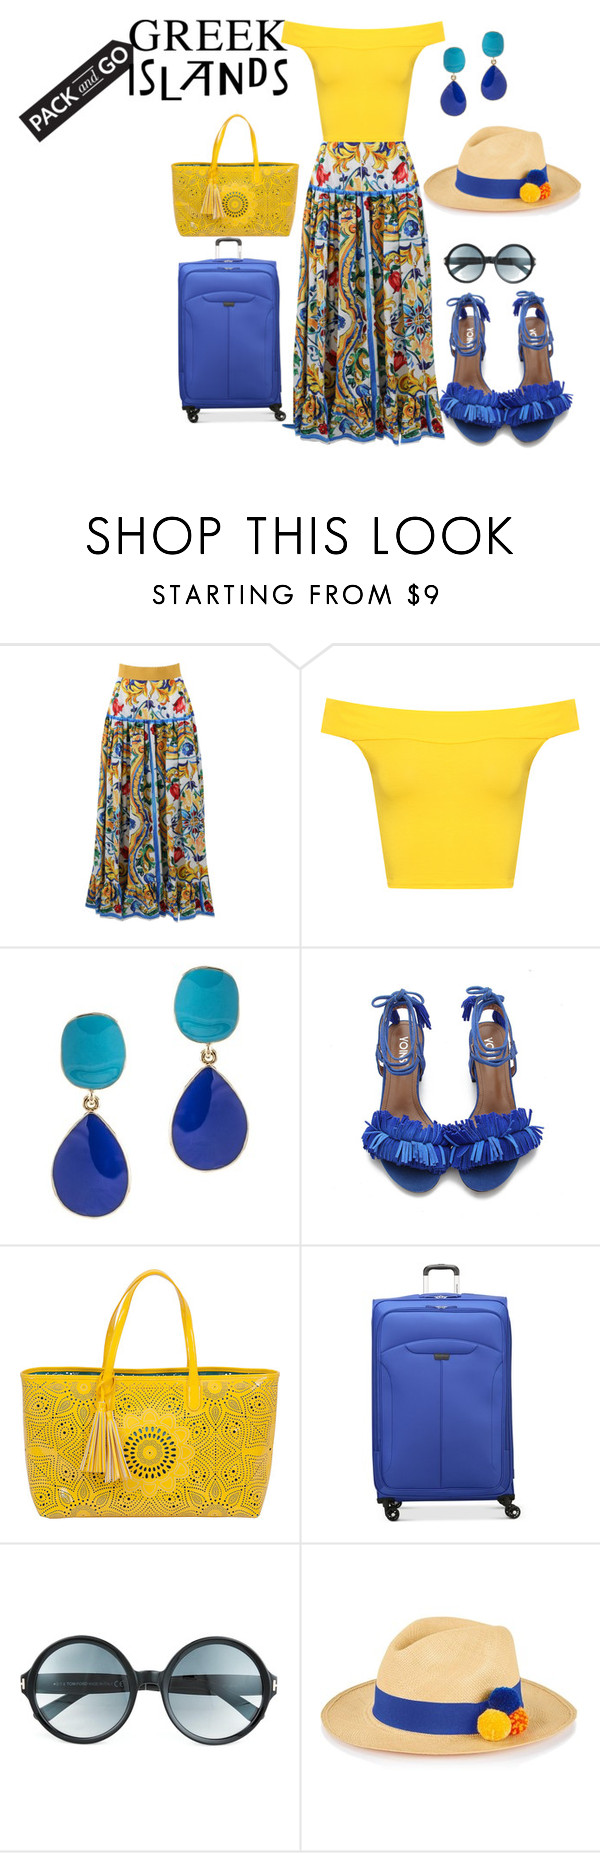 """#packandgo  #greekislands"" by giulia-sicilia ❤ liked on Polyvore featuring Dolce&Gabbana, WearAll, Kenneth Jay Lane, BUCO, Ricardo, Tom Ford, Prymal, Packandgo and greekislands"